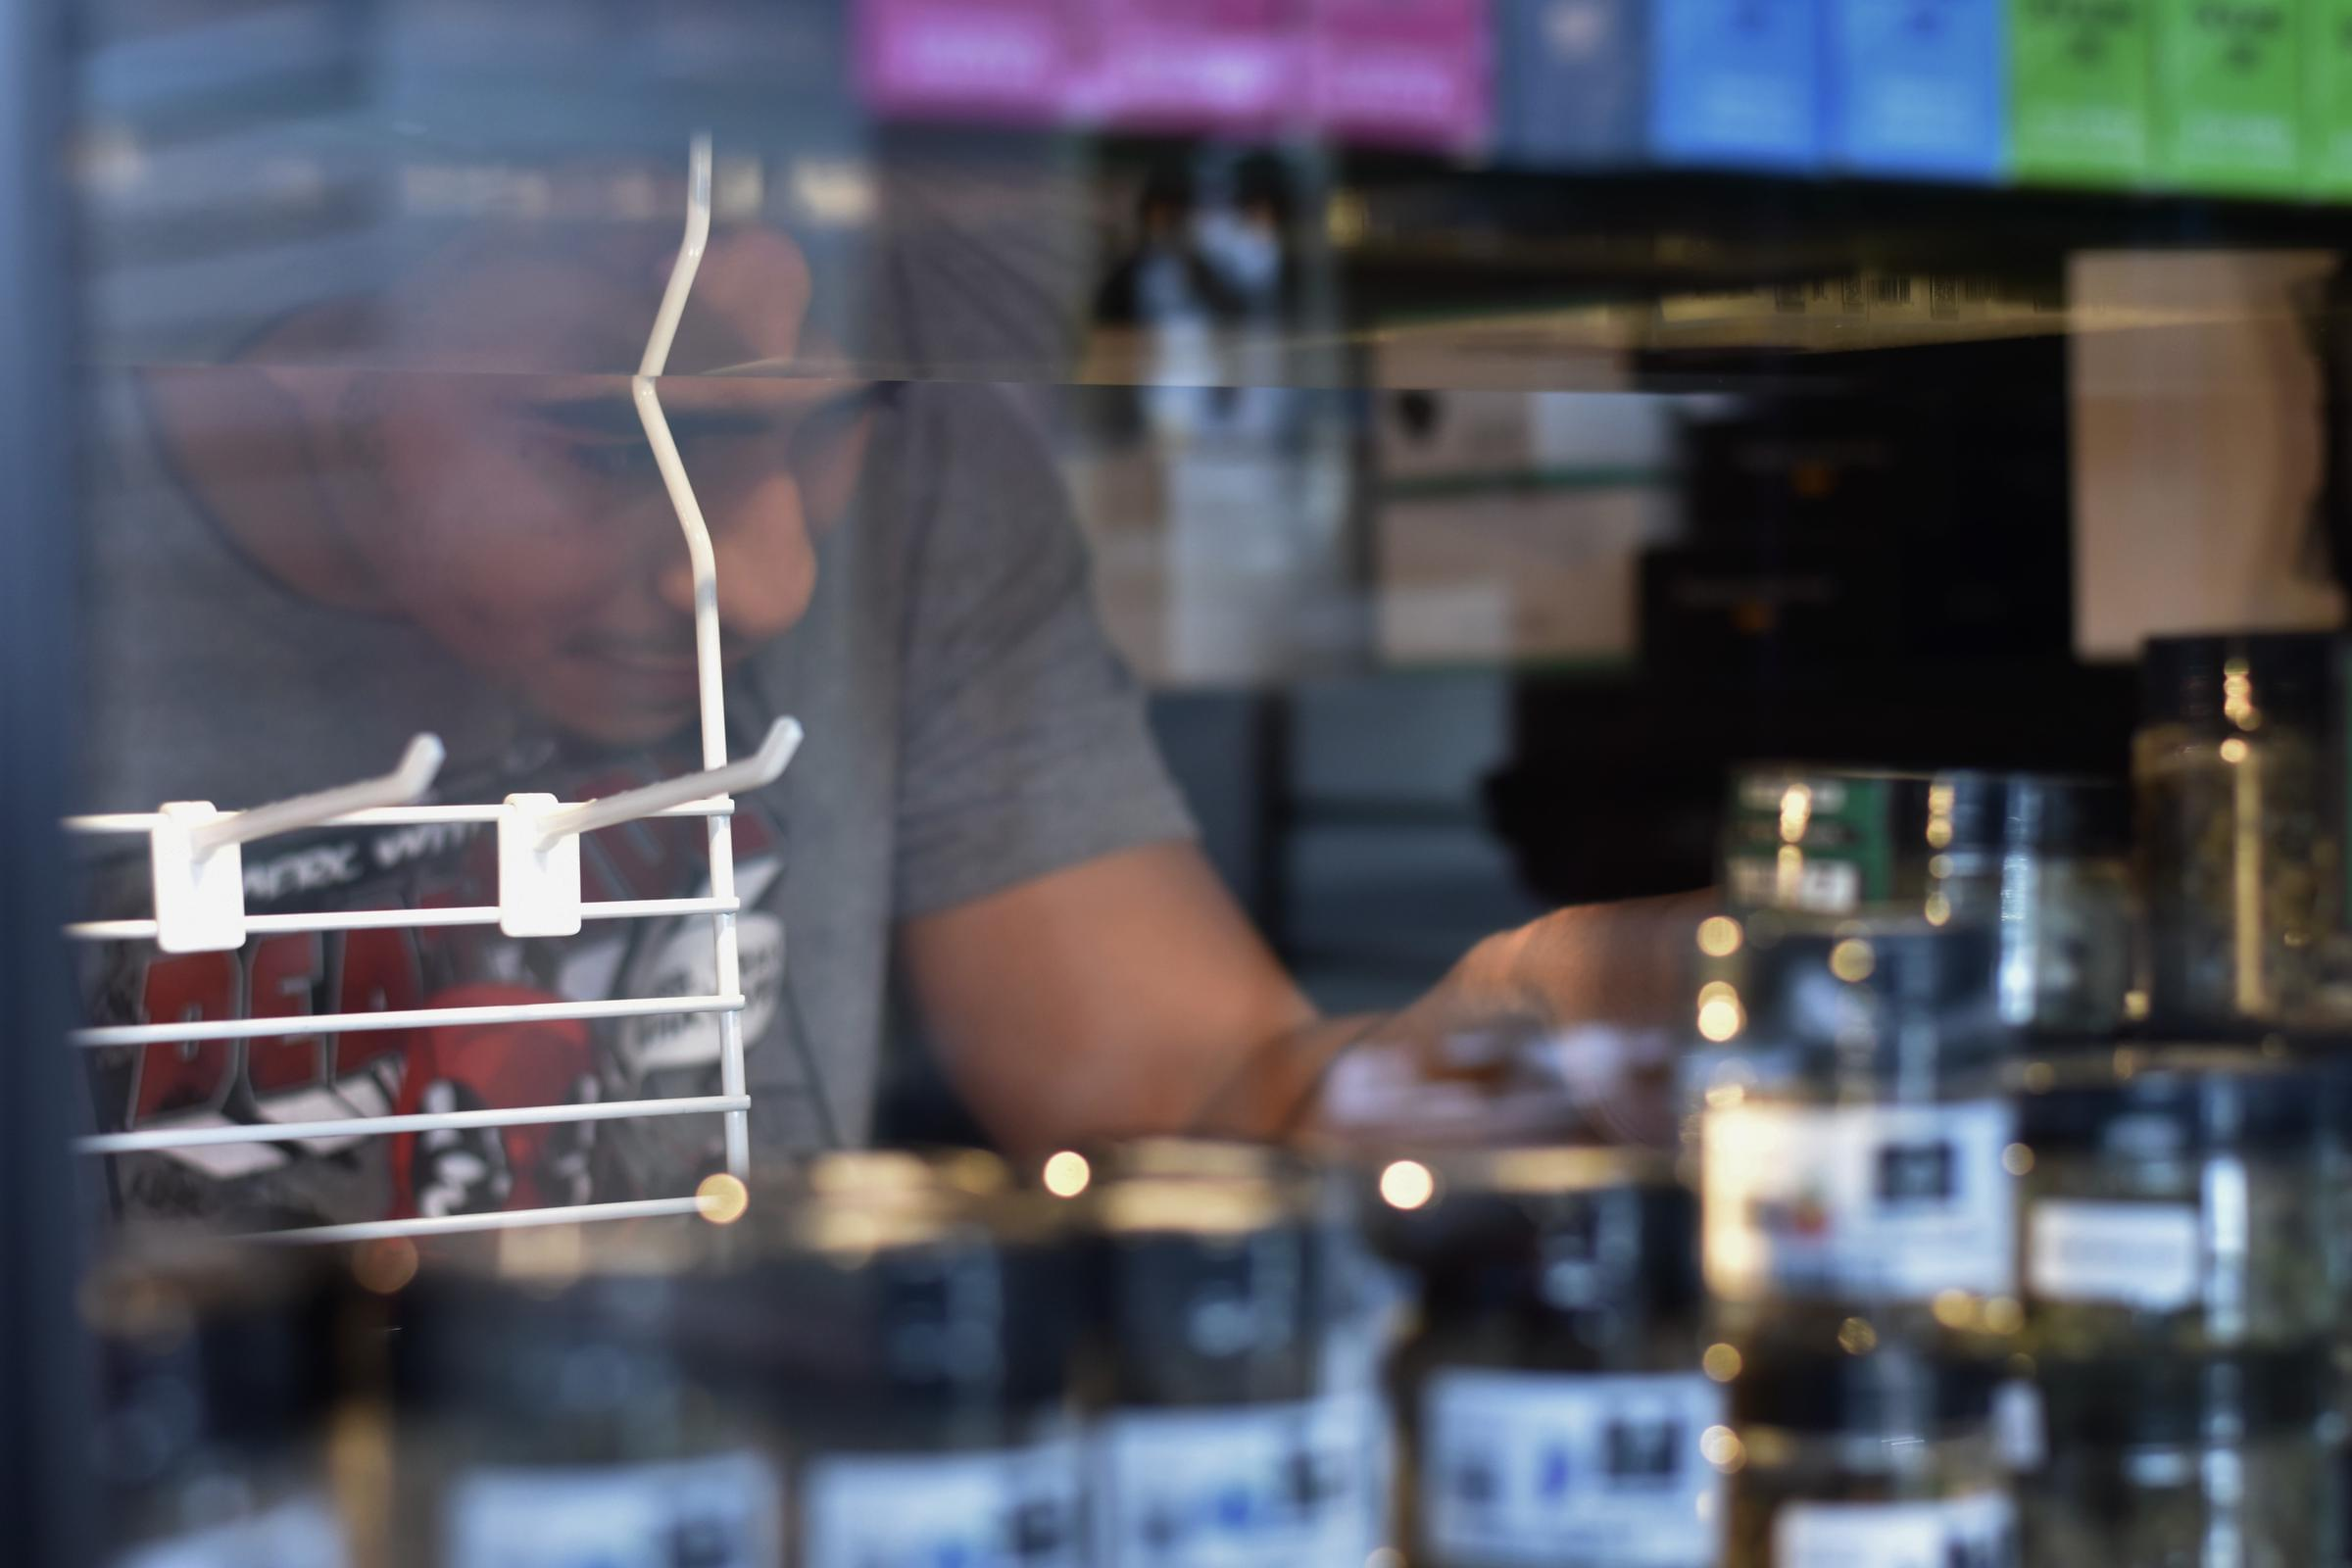 Logan Chase arranges CBD products in a glass case display.